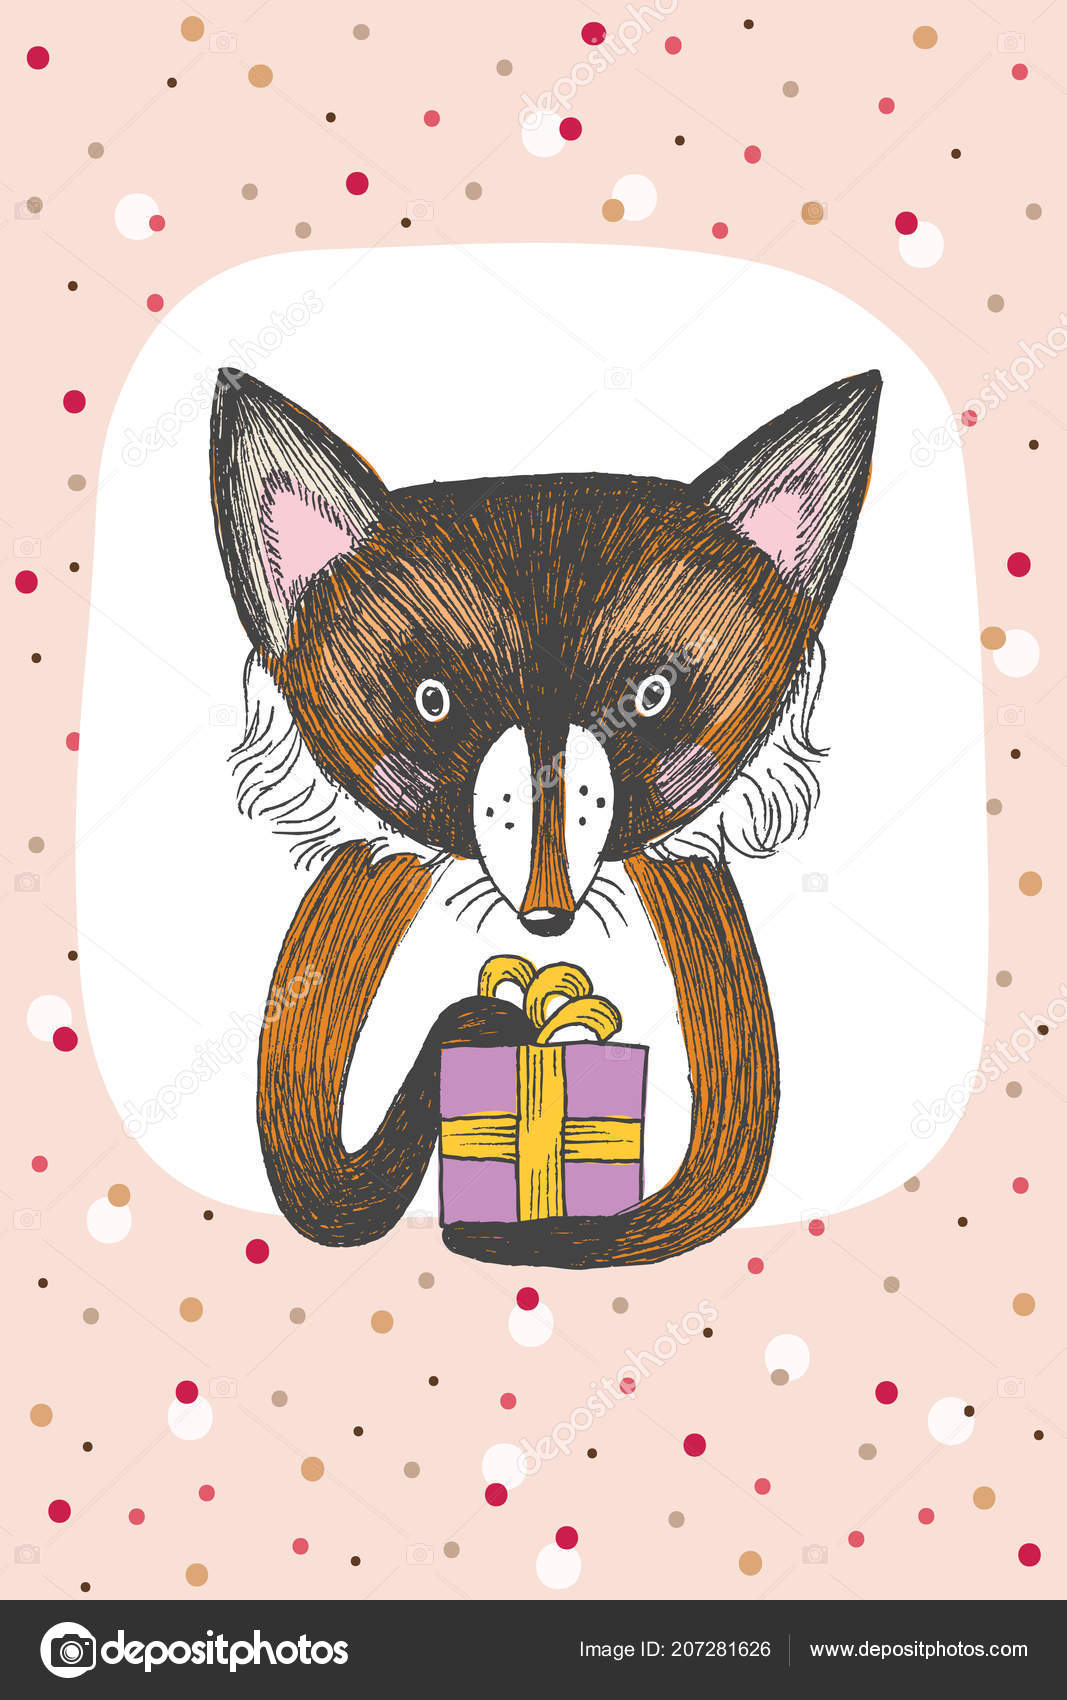 Greeting Card Design With Cute Fox Keeps A Gift Happy Birthday Invitation Template Funny